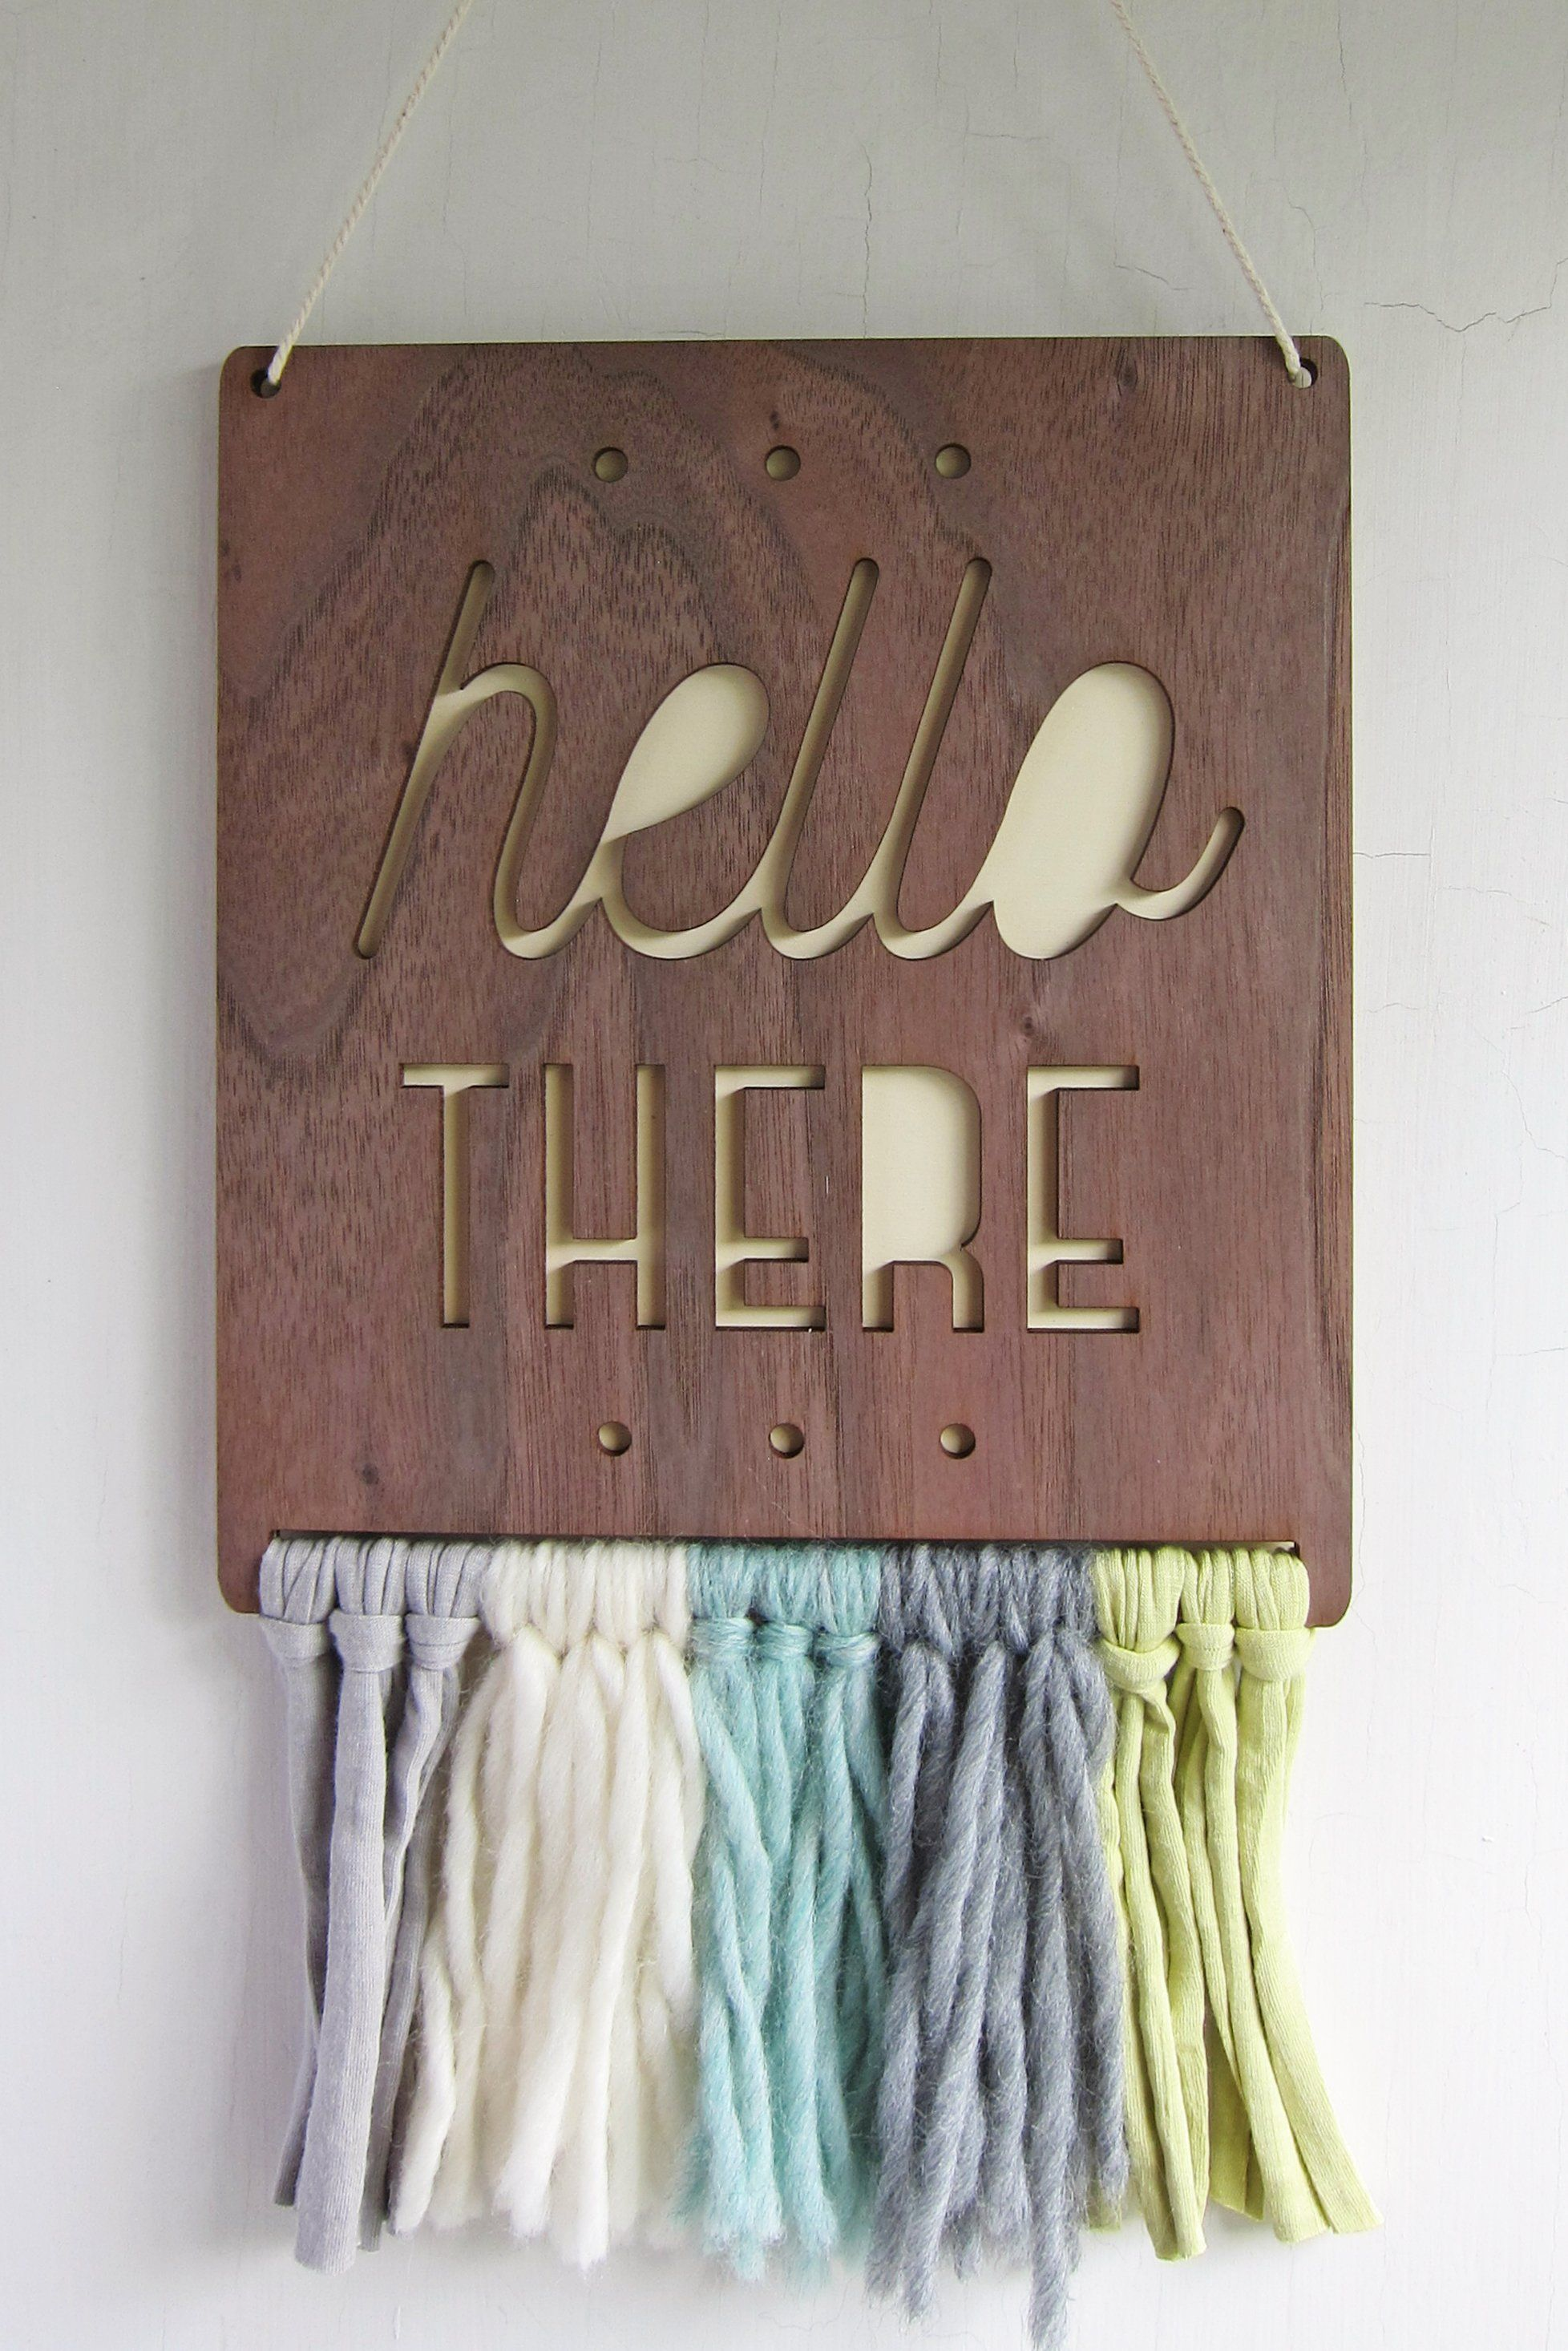 Hello There Wall Hanging - Project Nursery